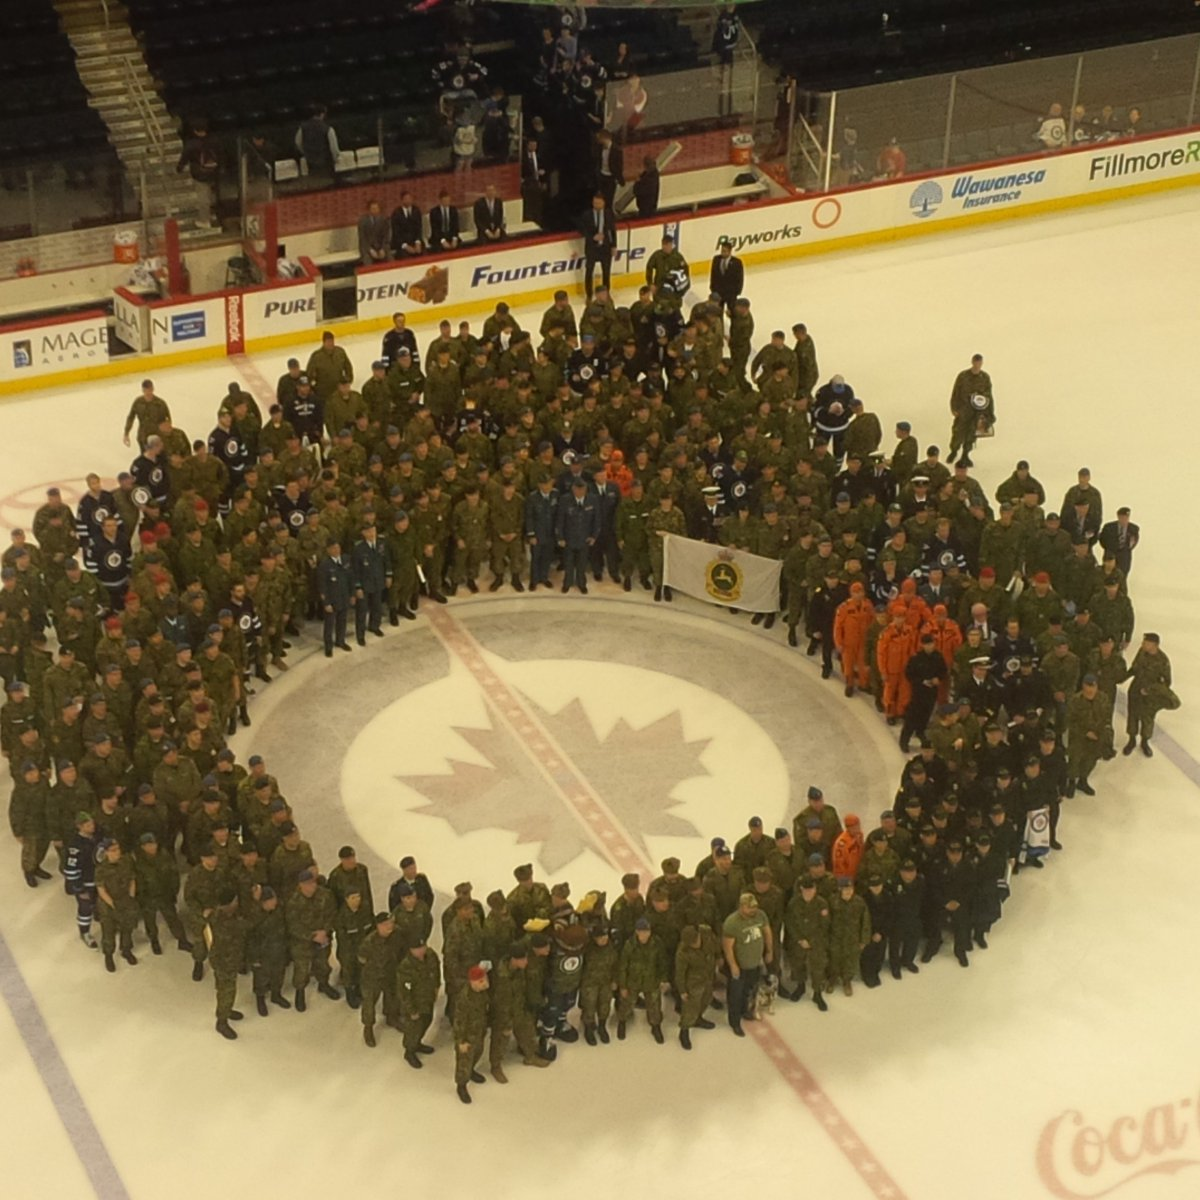 Every year, the post-game, on-ice, scene at #NHLJets Military Appreciation Night is fantastic. No exception tonight. https://t.co/ByZO6yu8Bj